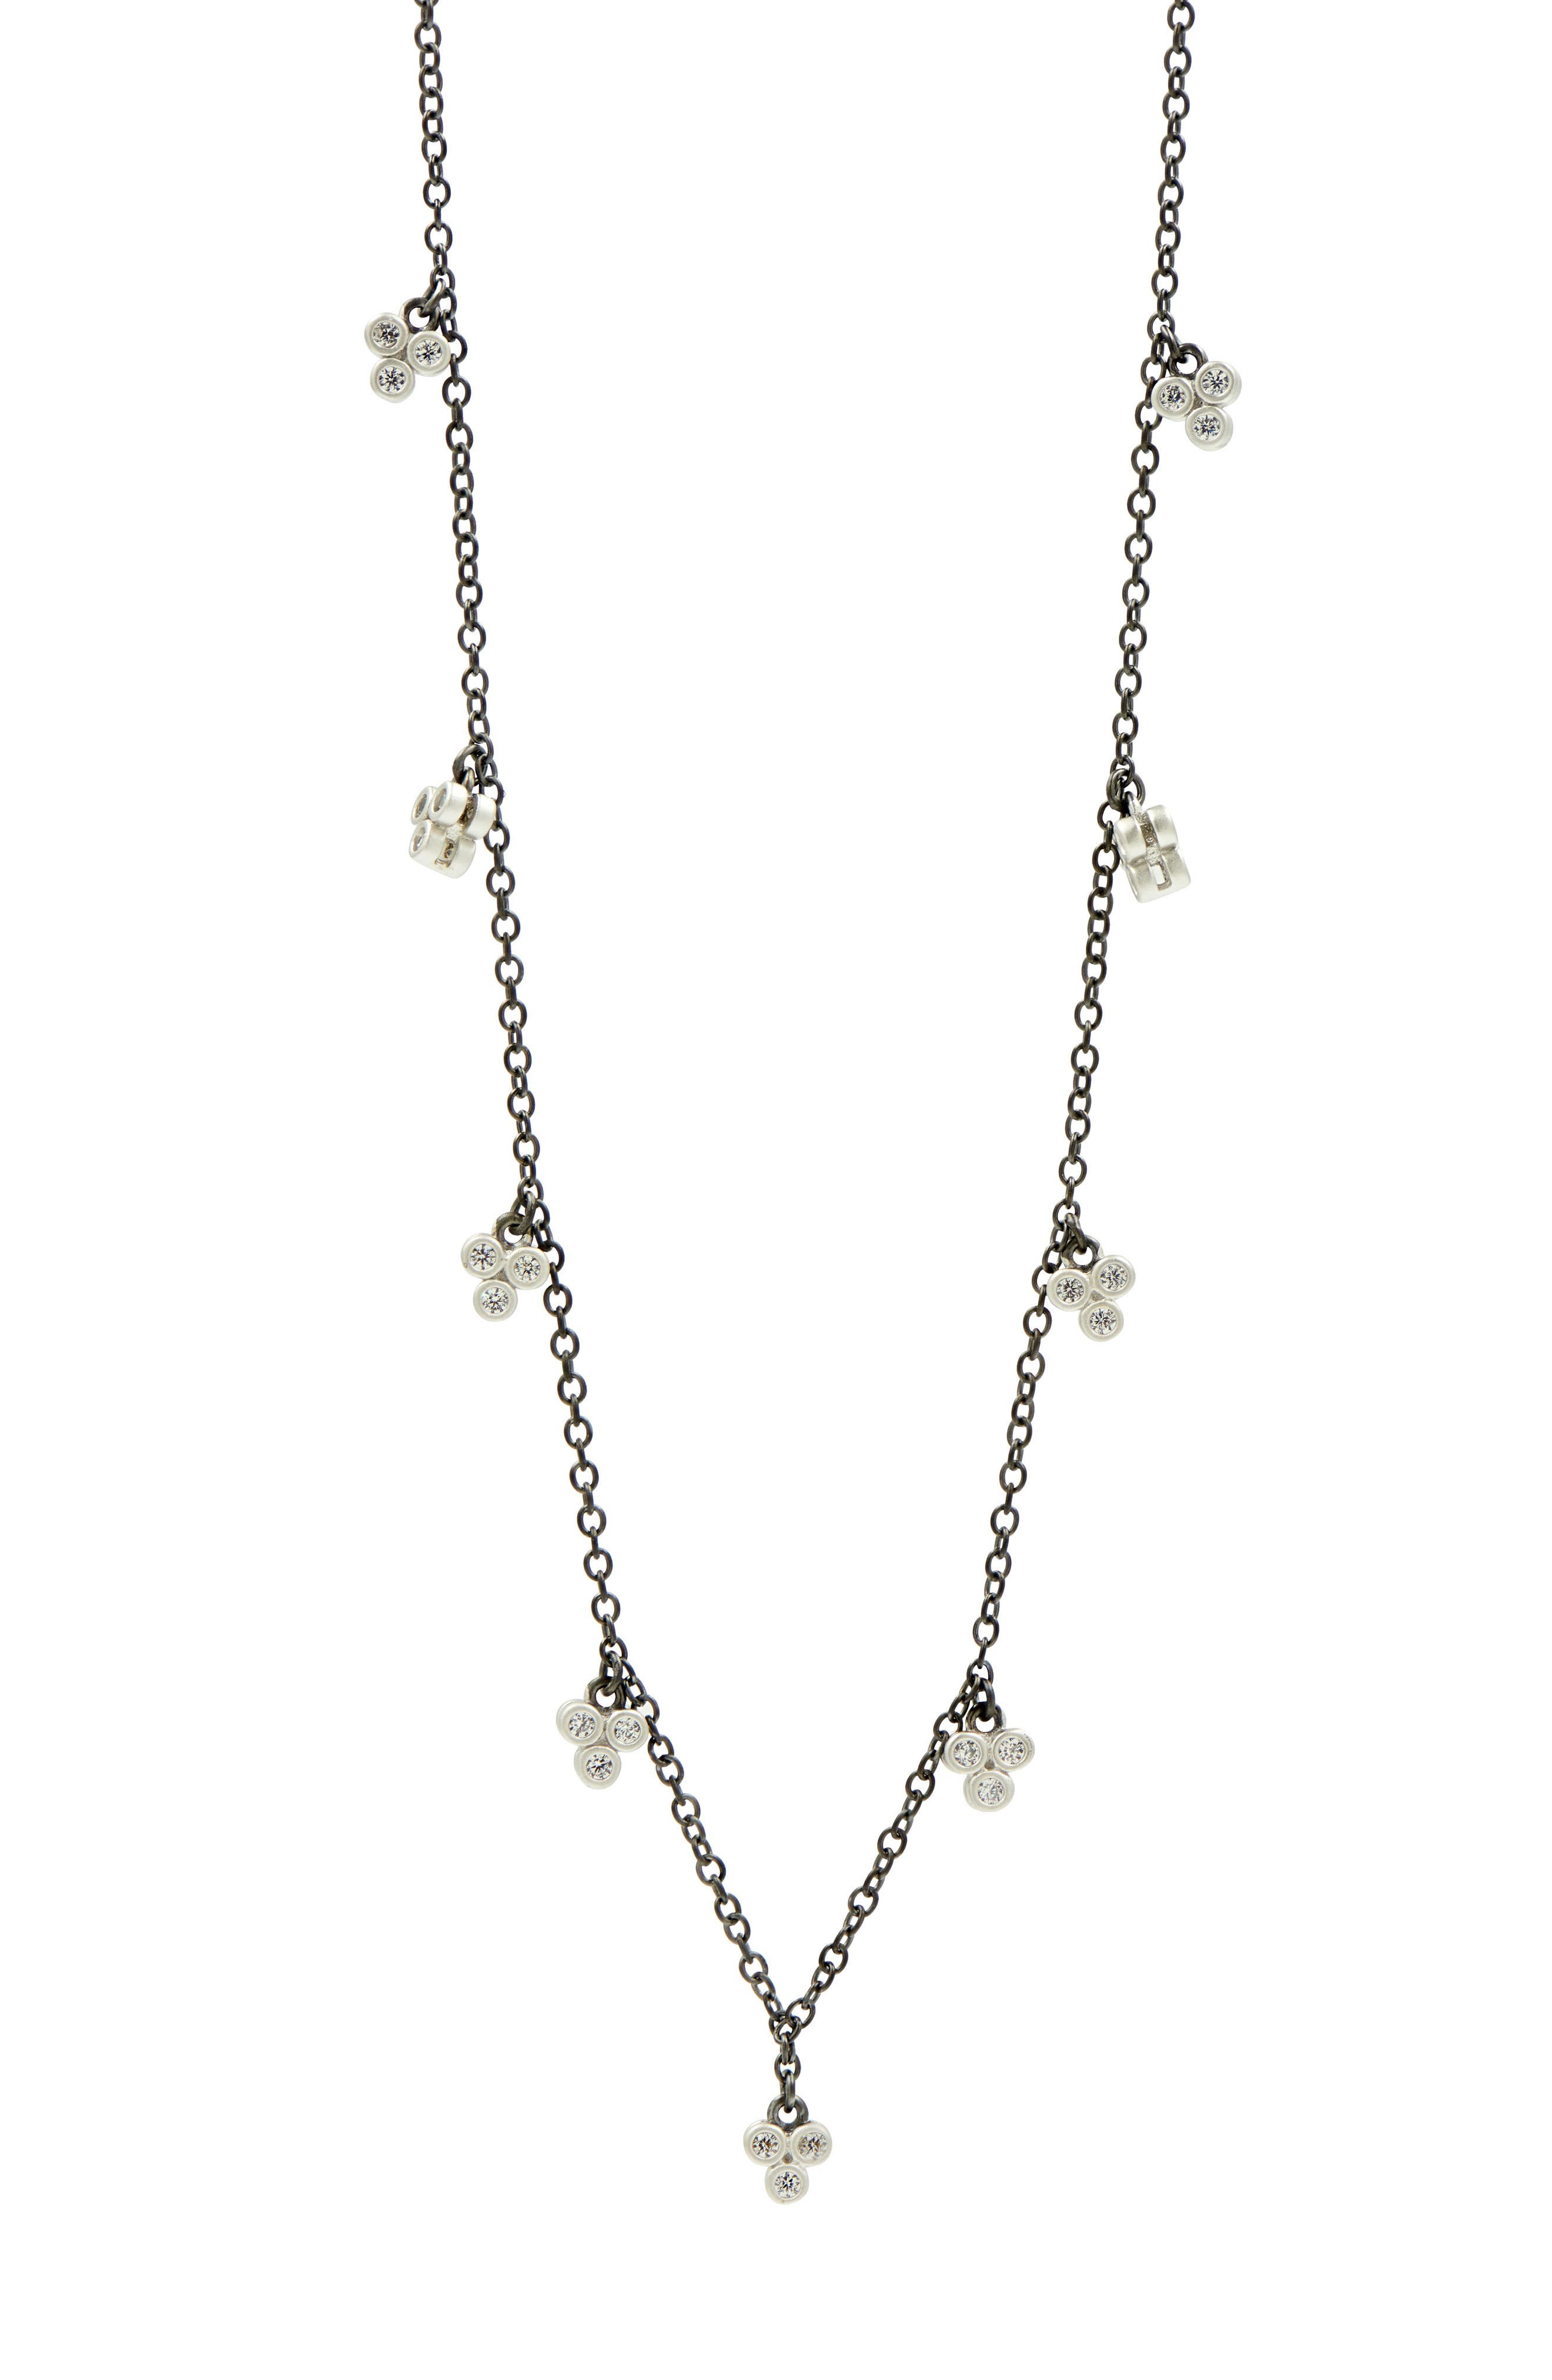 FREIDA ROTHMAN Industrial Finish 3-Point Charm Necklace in Black/ Silver